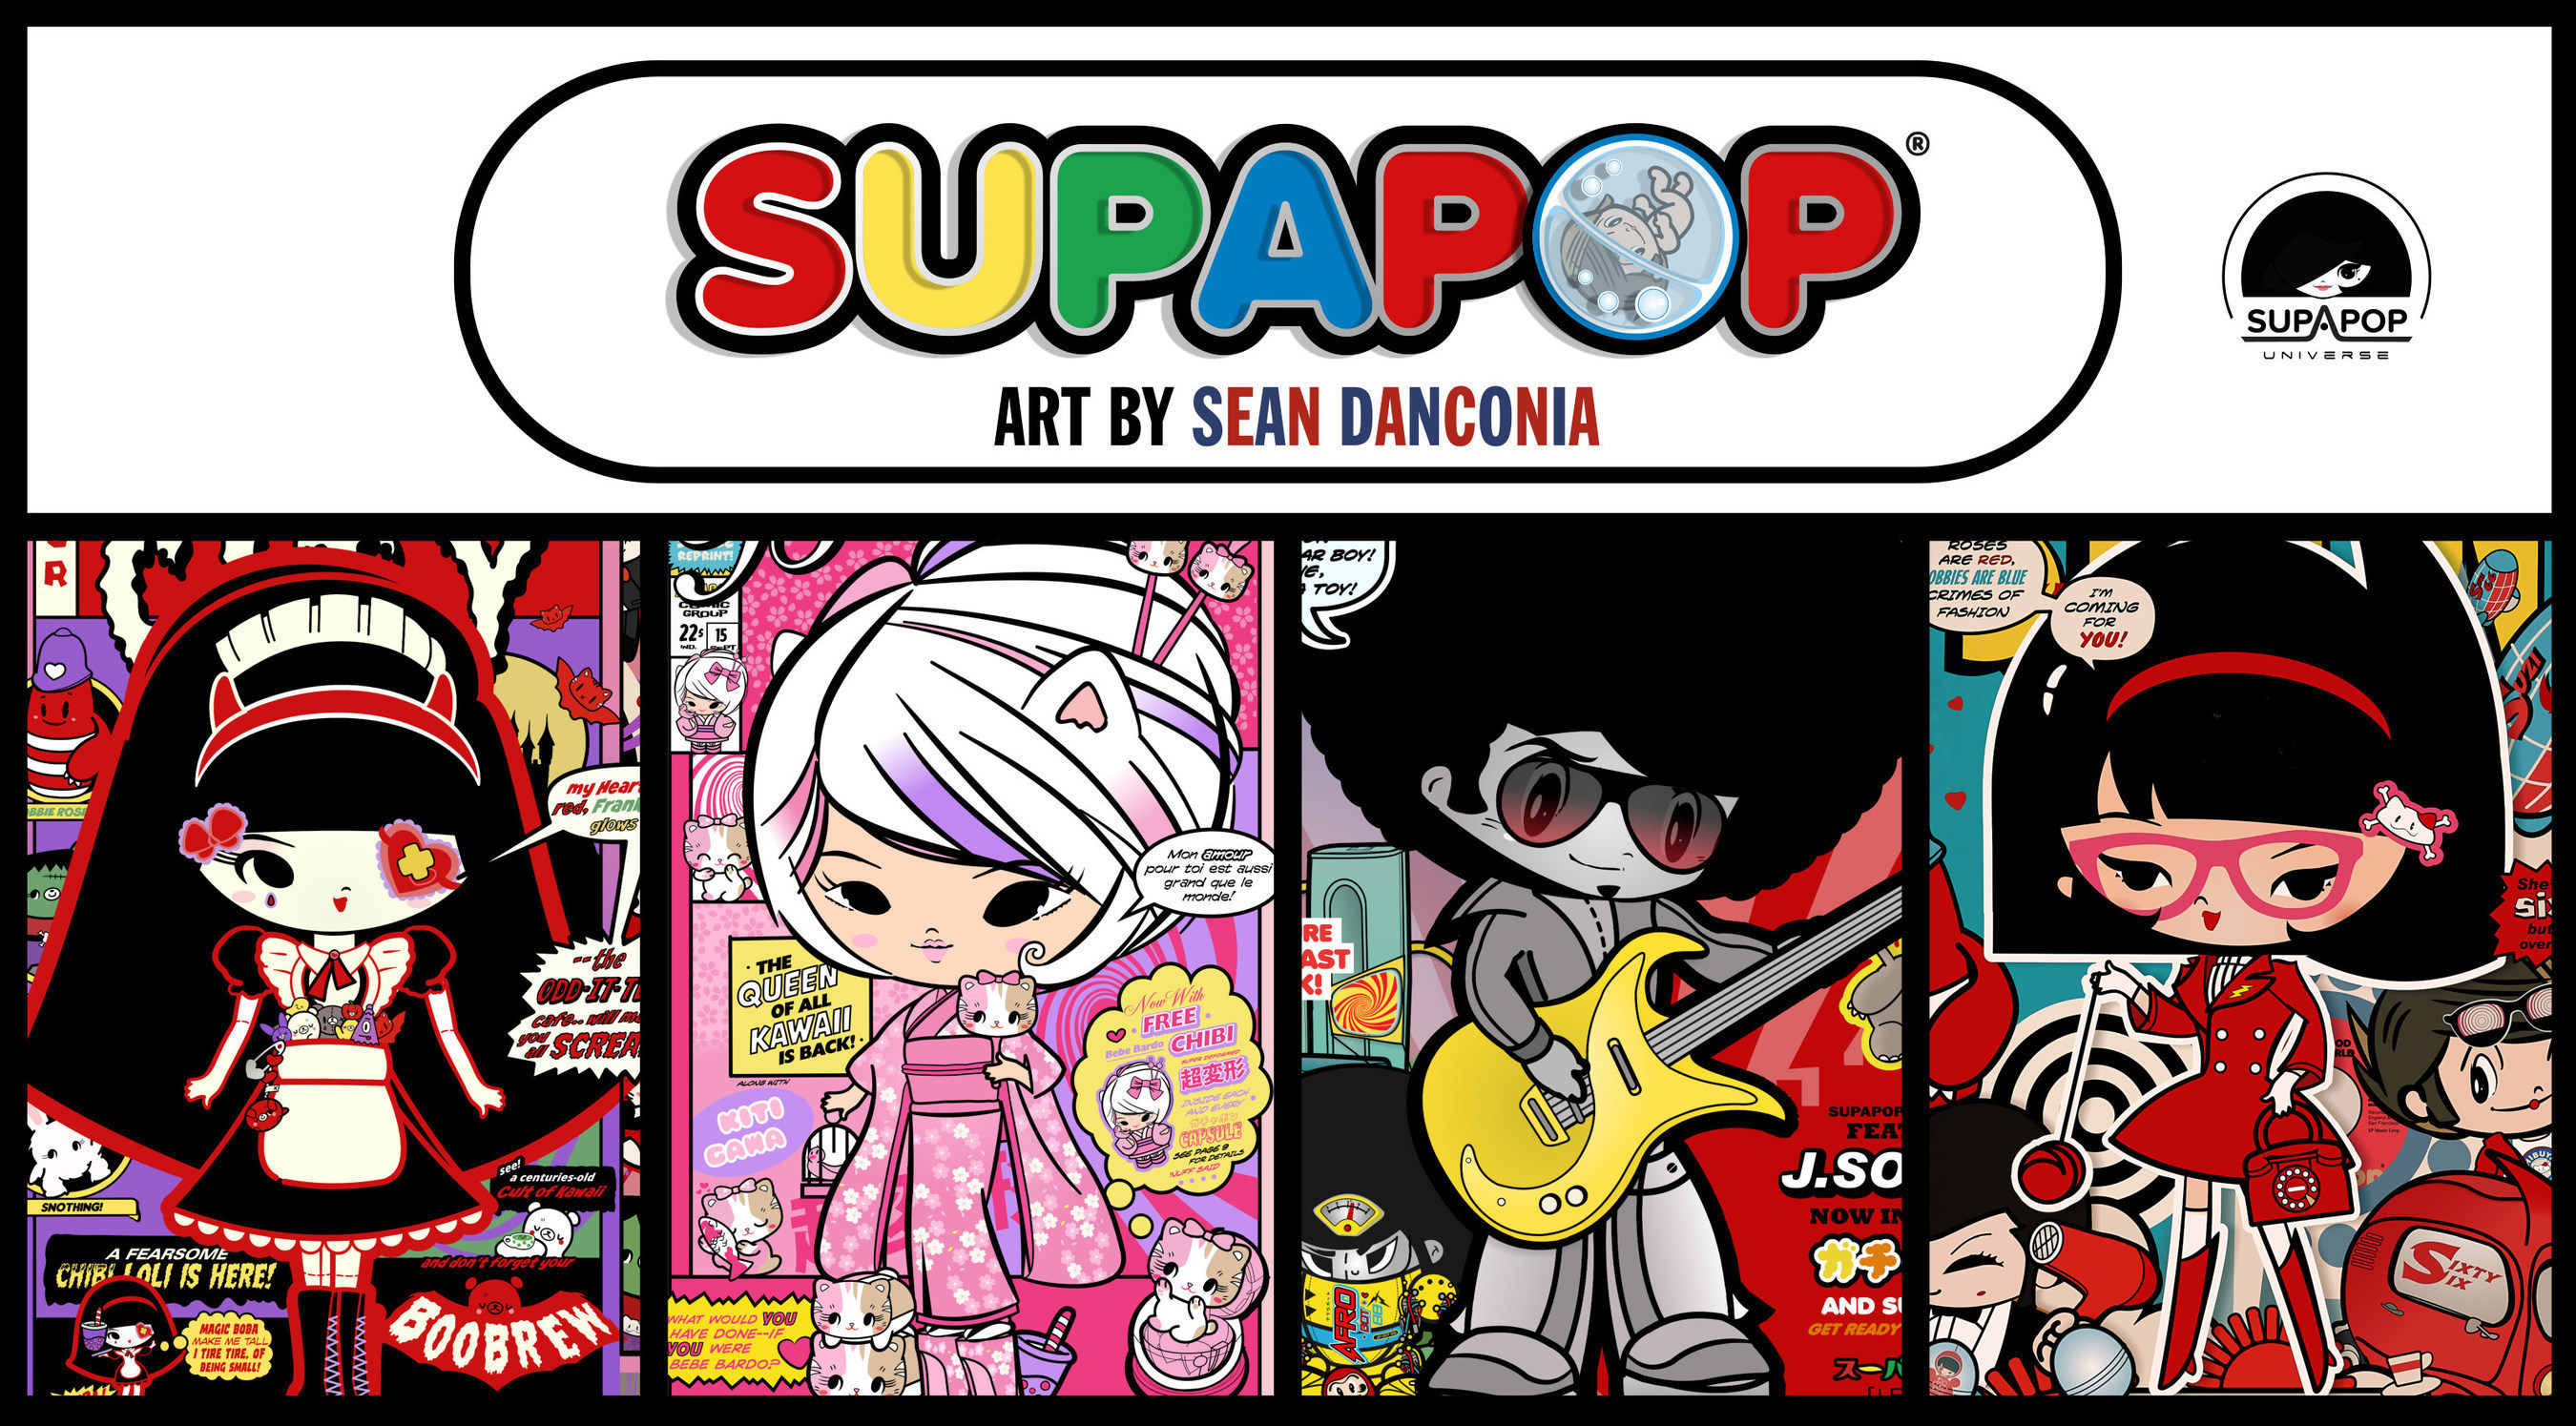 SupaPop by Sean Danconia featuring Loli Pop, Bebe Bardo, J.Soul 7 and Suzi Sixty-6